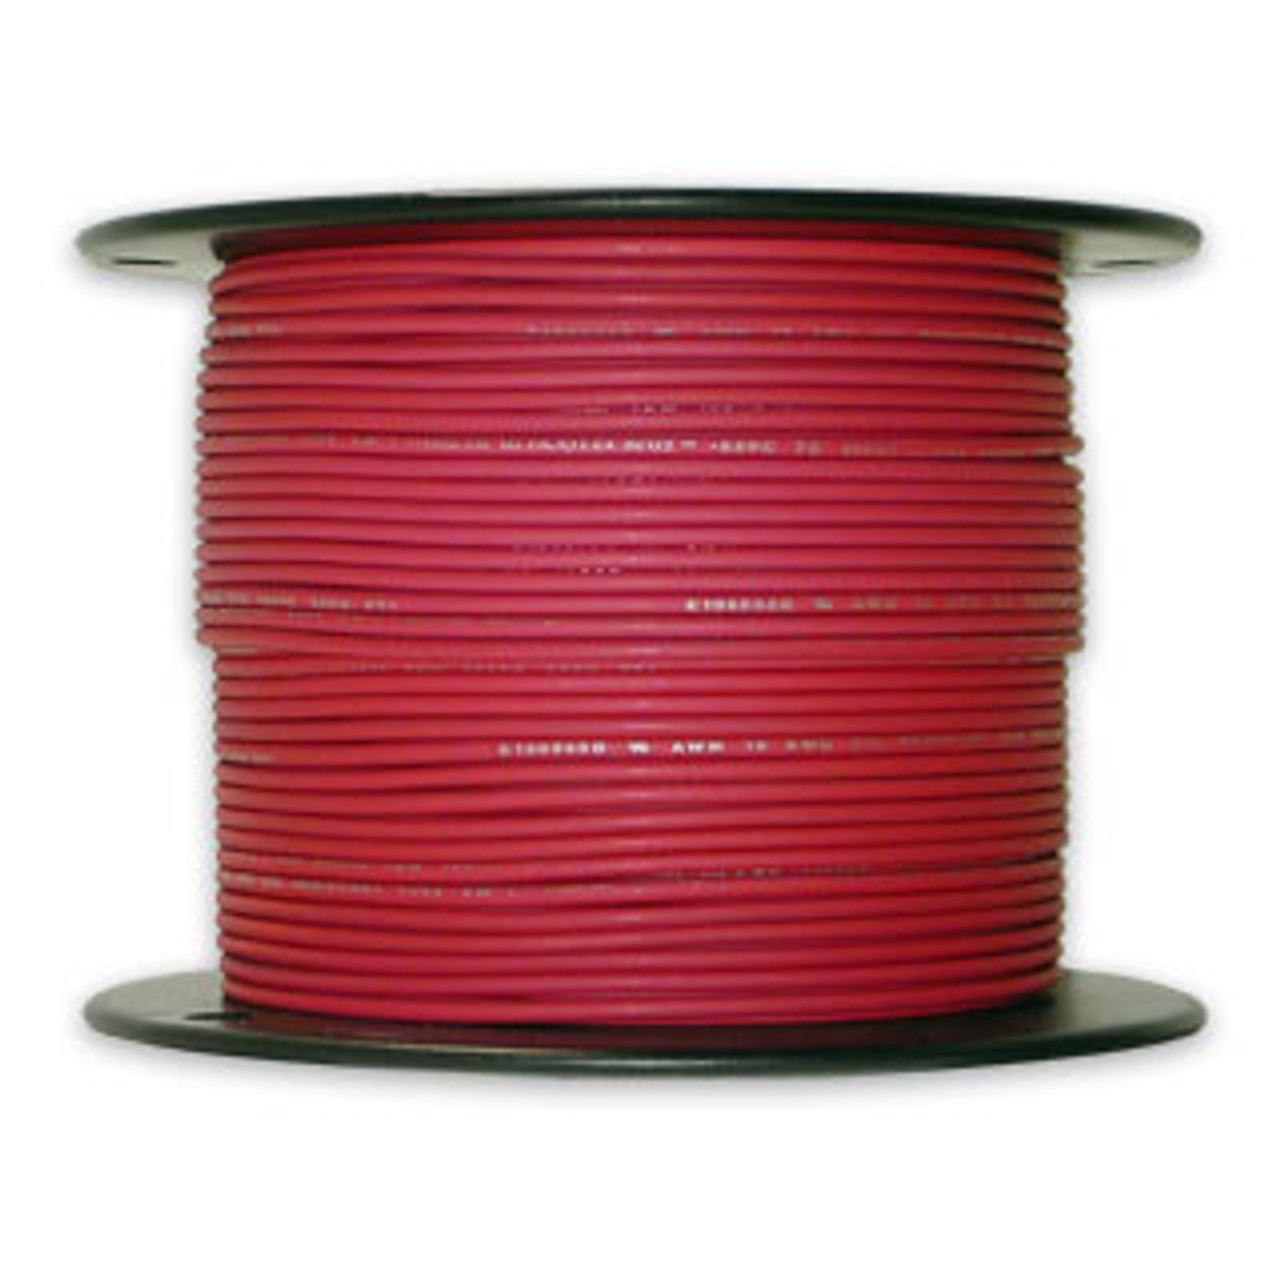 Arctic Ultraflex Cold Weather Flexible Wire 500 Foot Spool 16 AWG Red